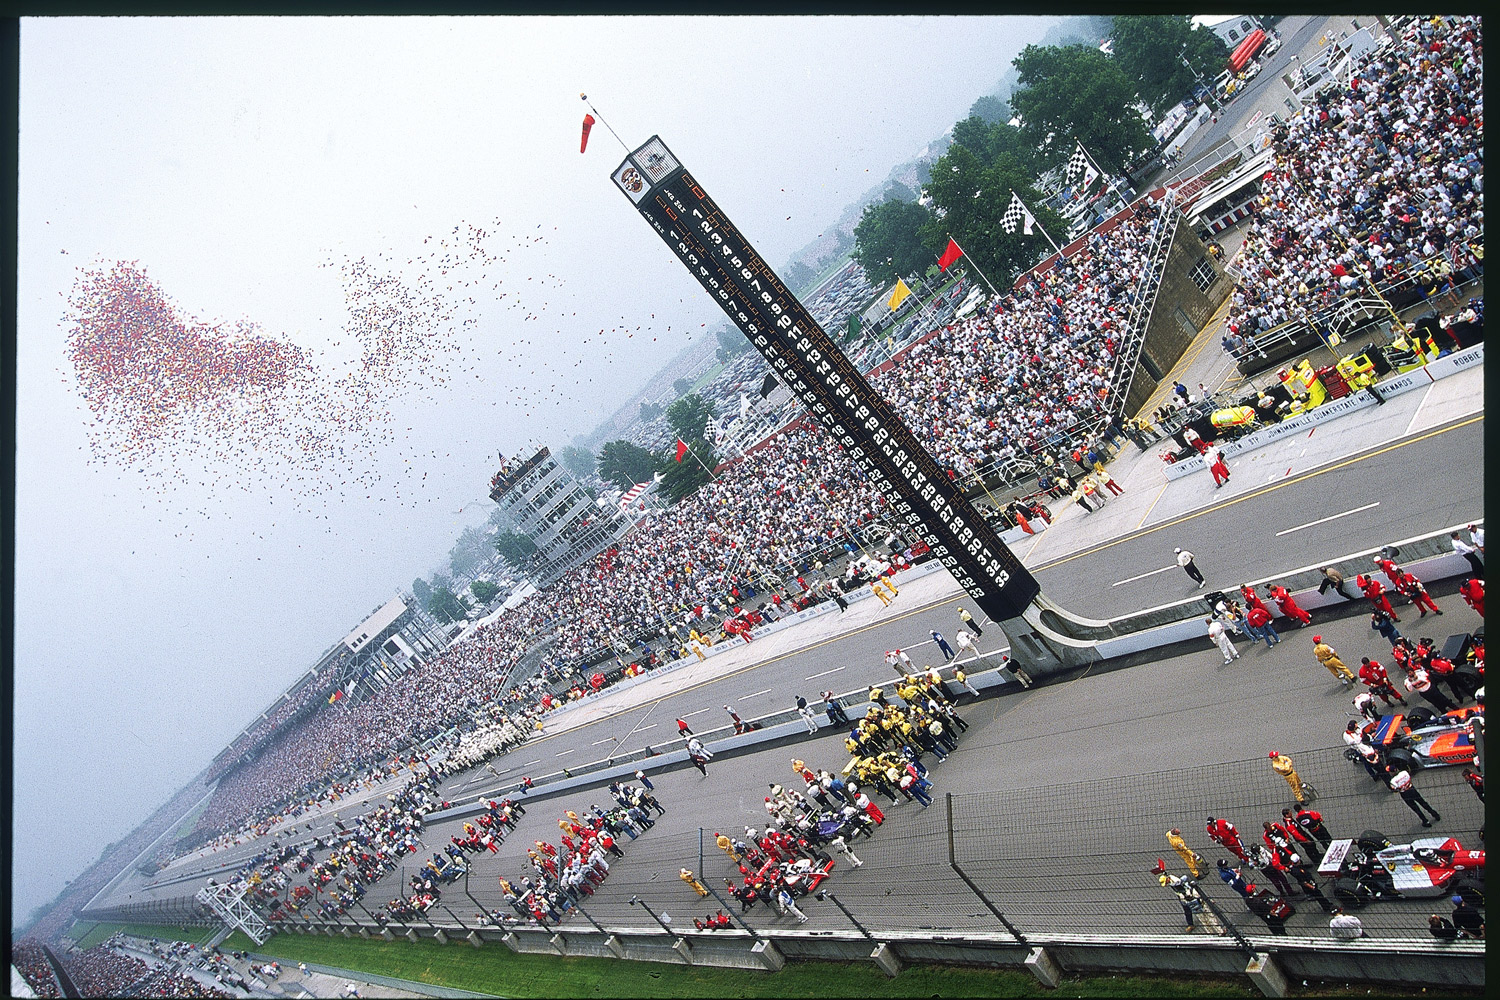 The annual tradition of getting the 500 underway by releasing some 30,000 helium-filled balloons (just as the last note of Back Home Again in Indiana is sung) presaged a paradoxical race. It was once full of no-names (many top drivers were in CART) and incomparably rich. The biggest chunk of the record $8.7 million purse went to winner Eddie Cheever Jr., who came from the 17th position for his only 500 victory.